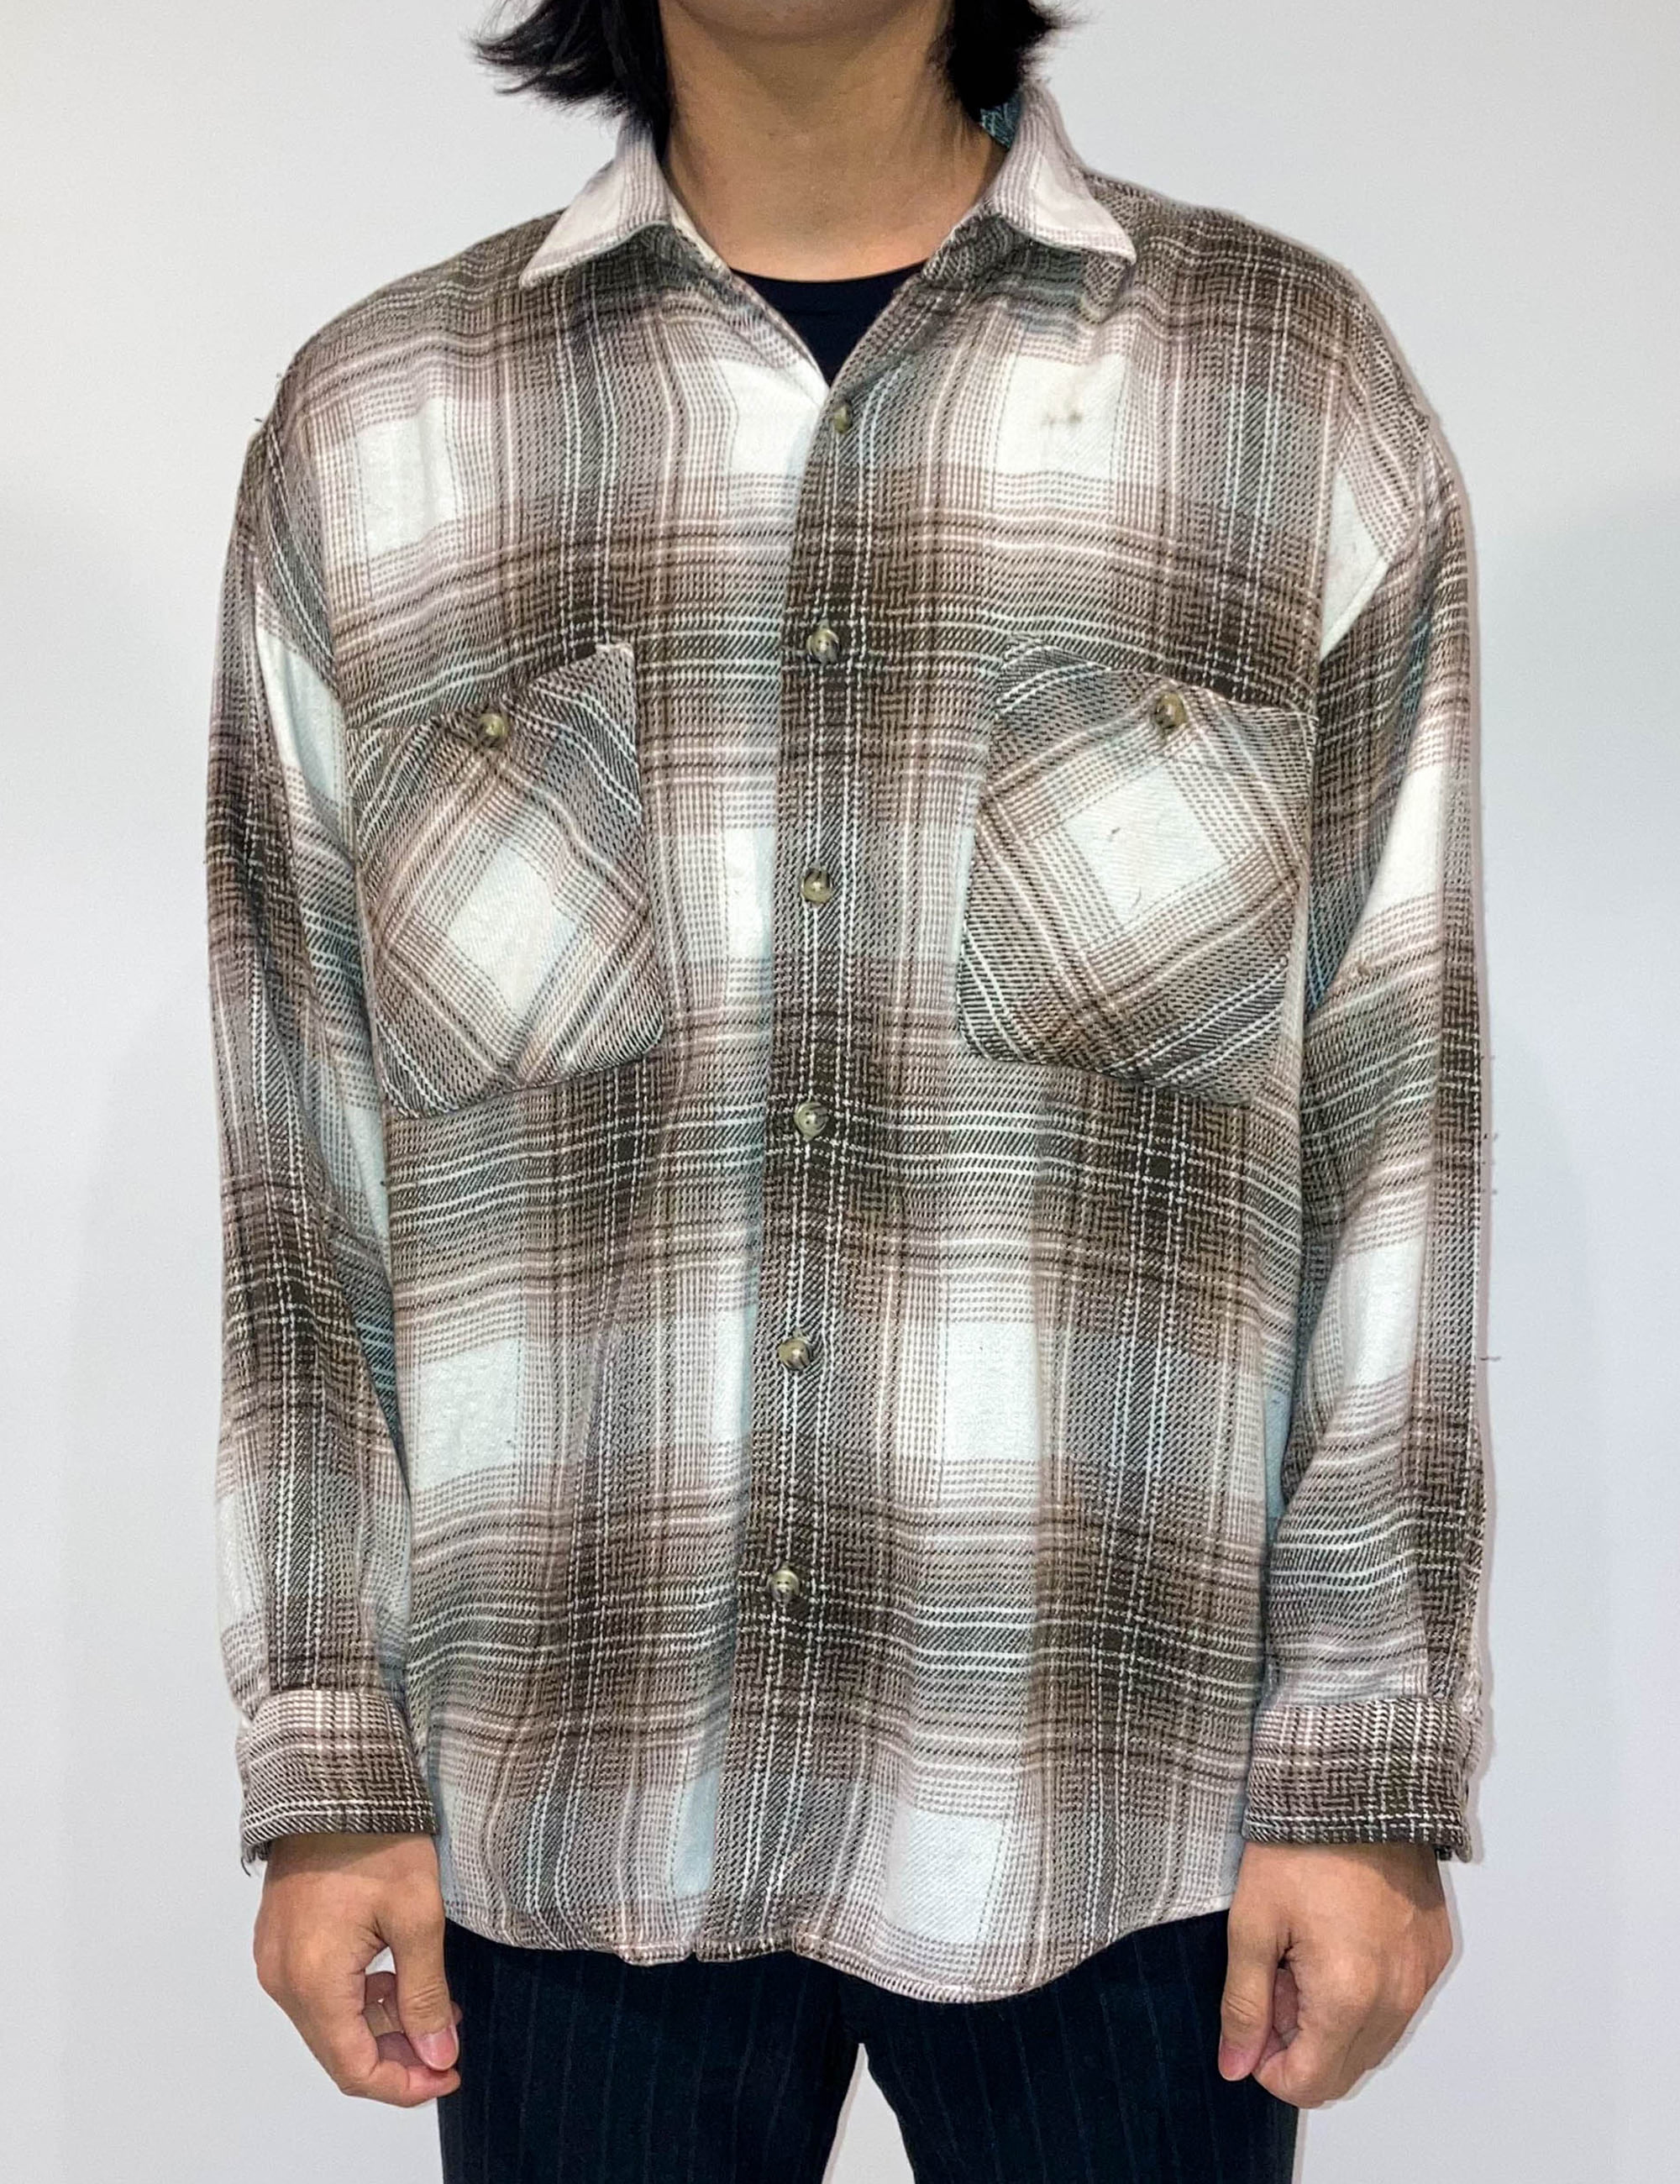 VINTAGE FRONT POCKET CHECK SHIRT